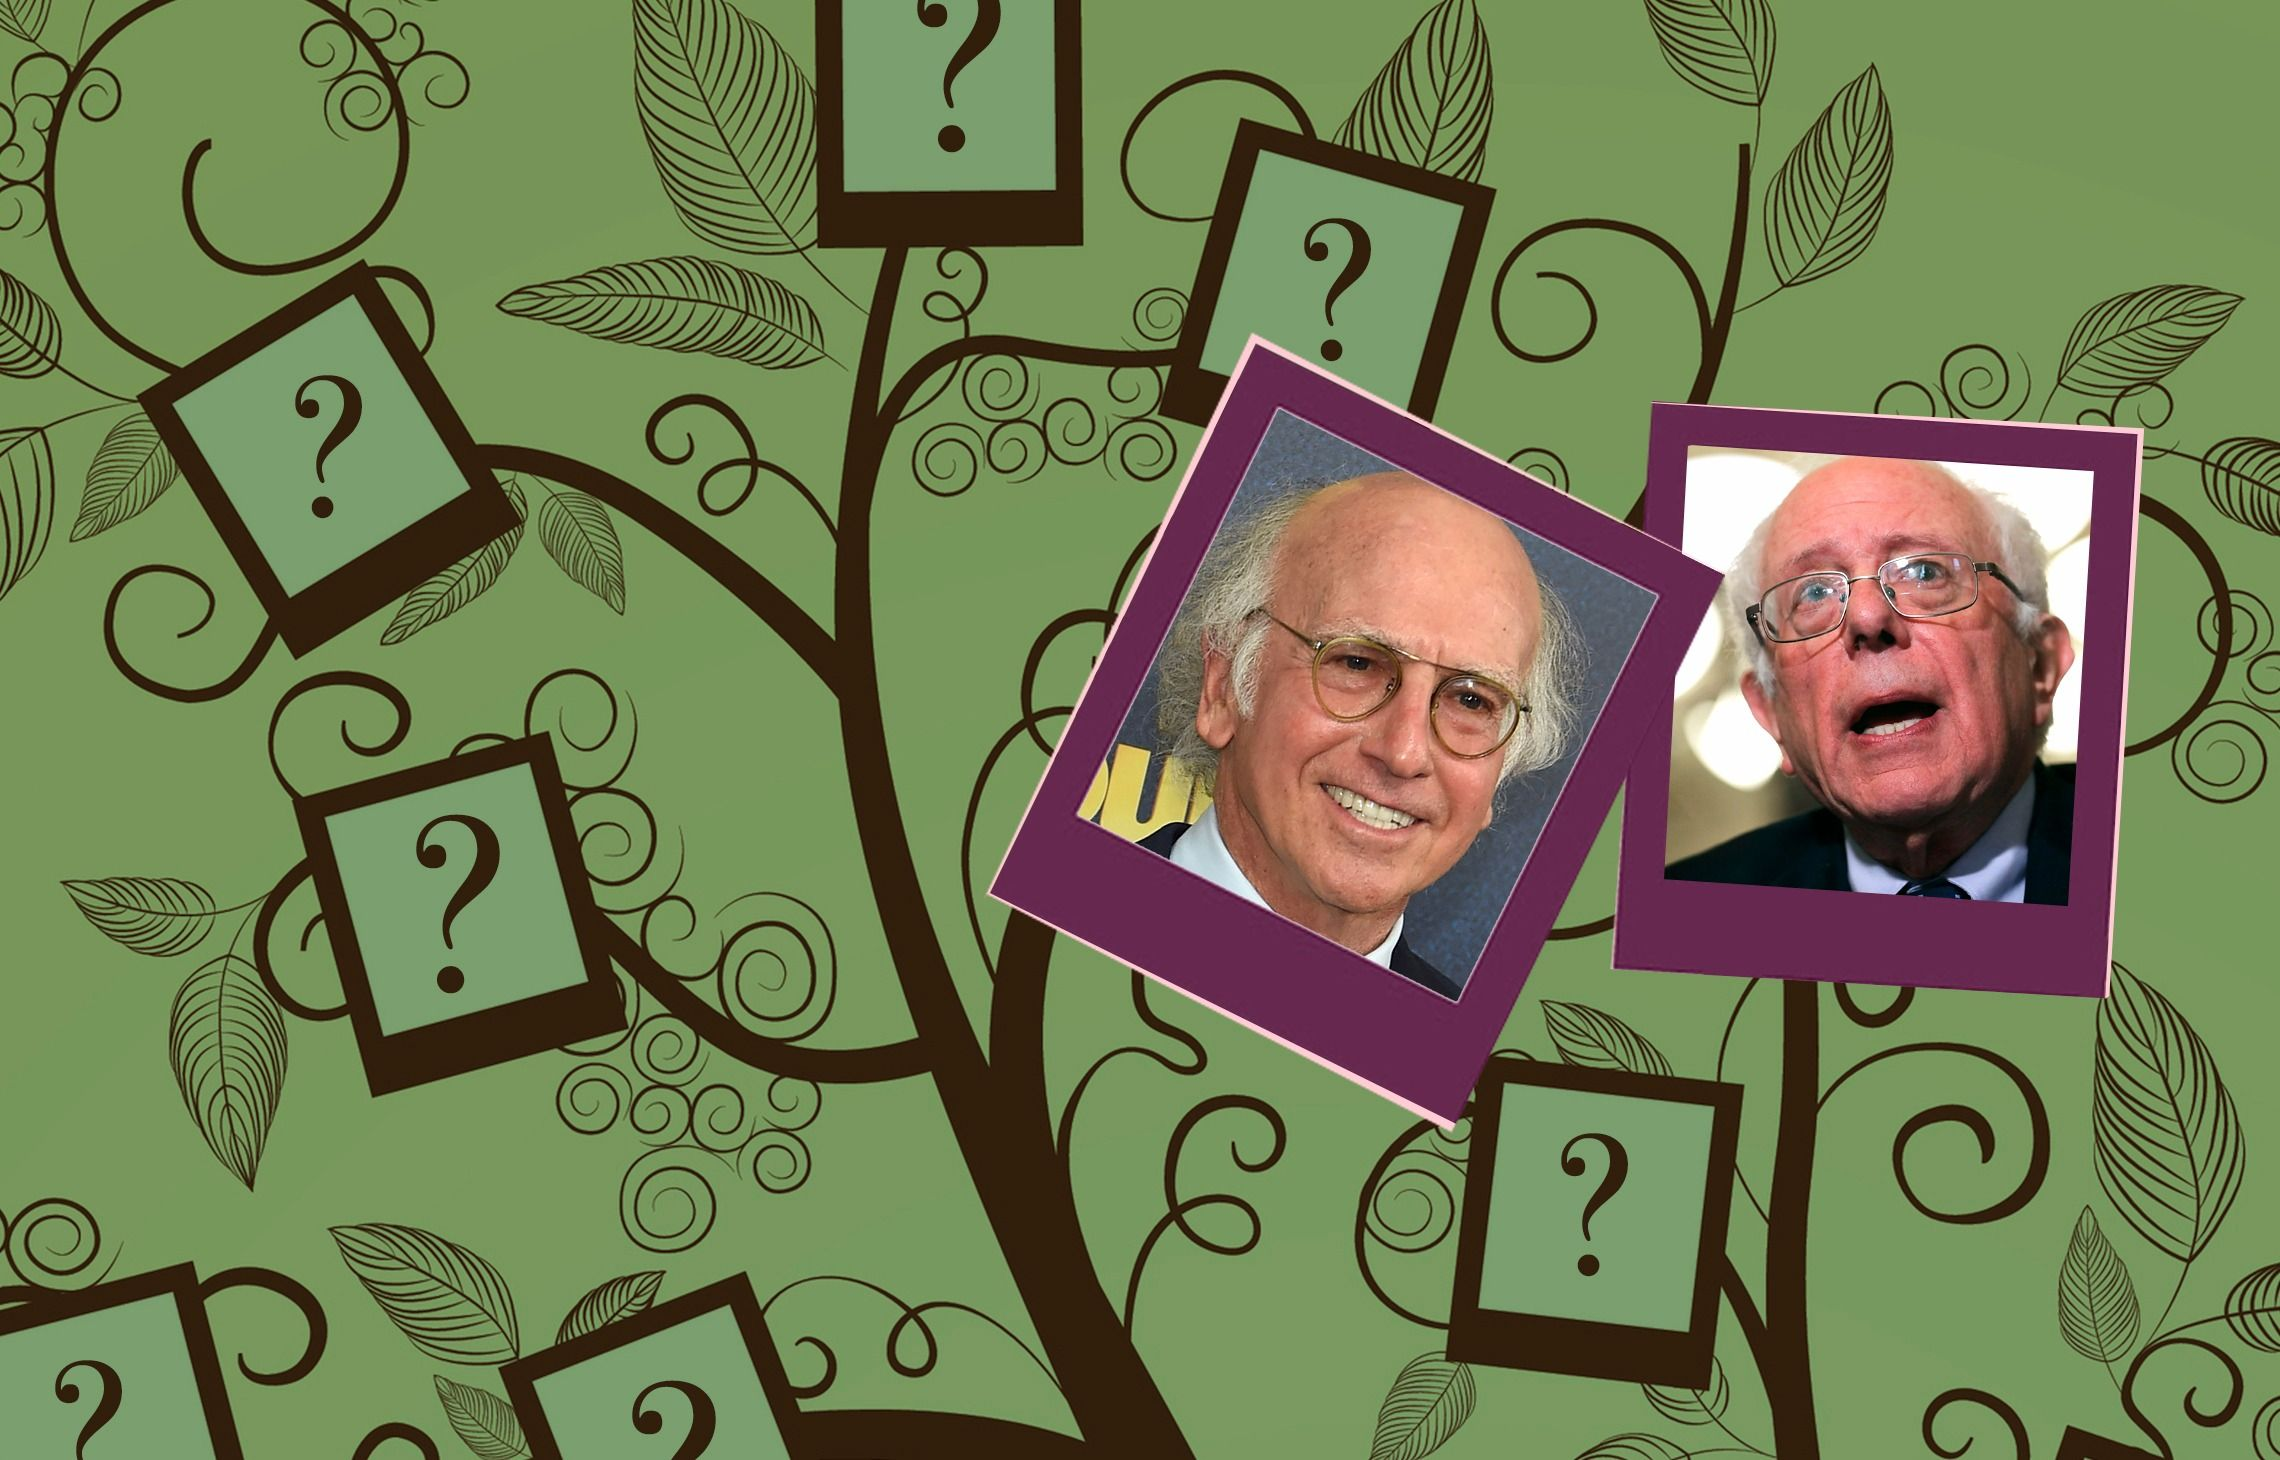 Ancestry Non-Shocker: Larry David and Bernie Sanders are Distant Cousins